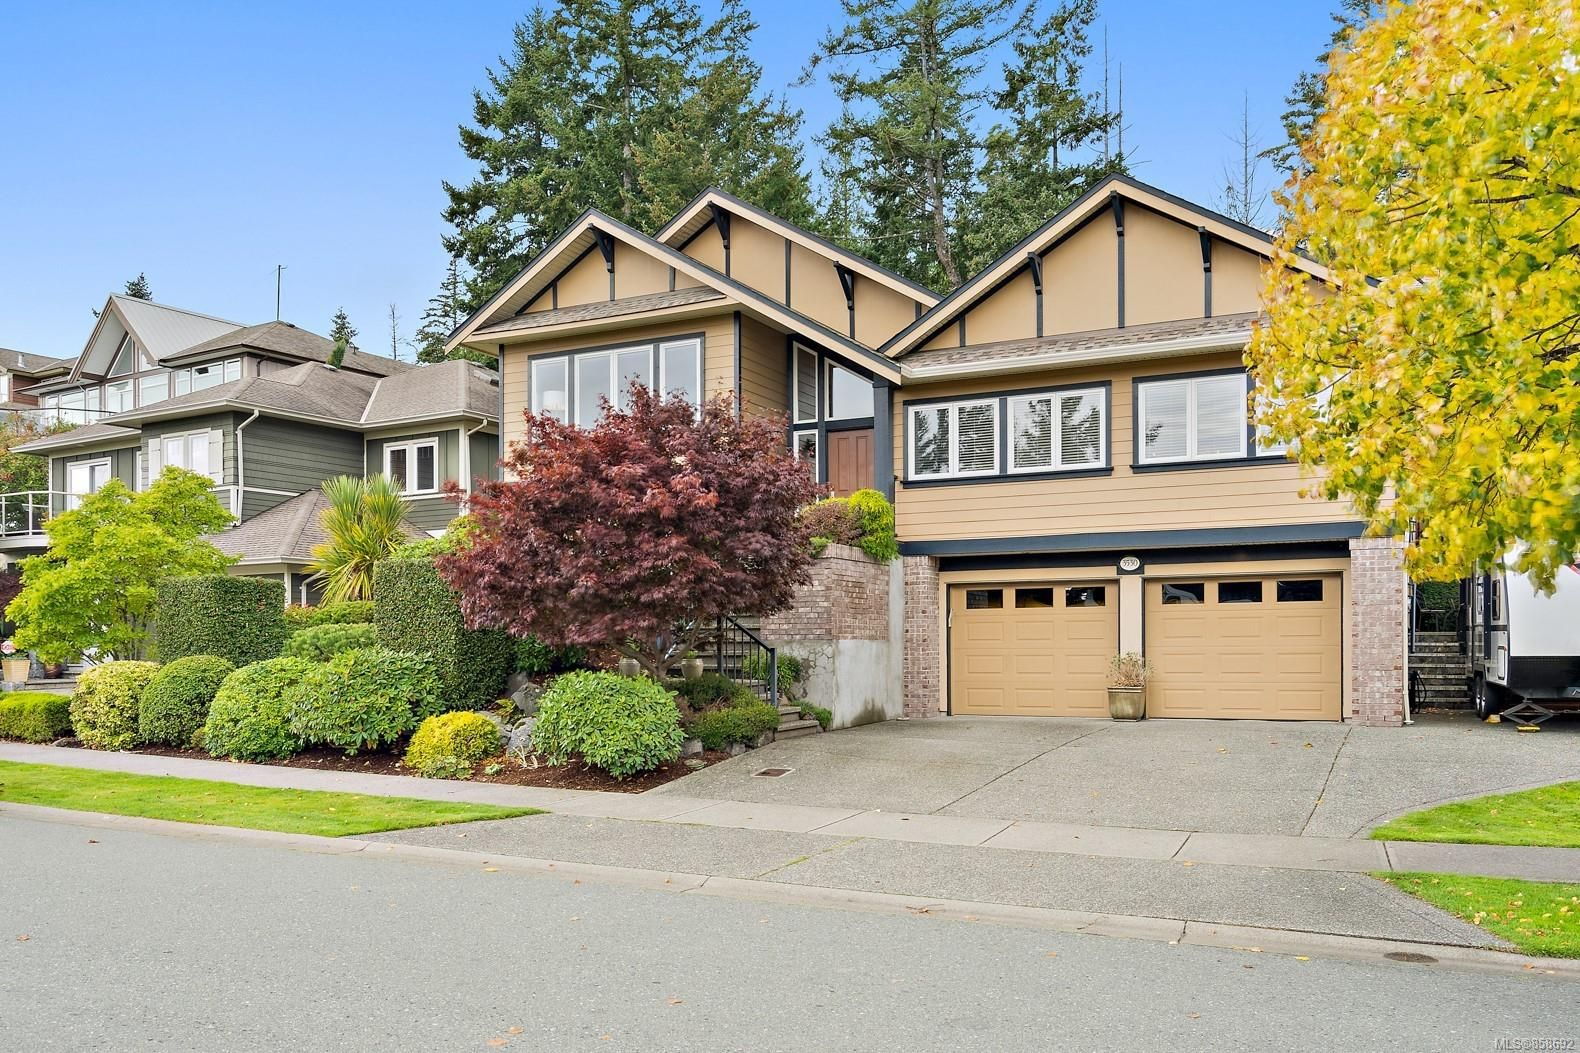 Main Photo: 3530 Promenade Cres in : Co Latoria House for sale (Colwood)  : MLS®# 858692